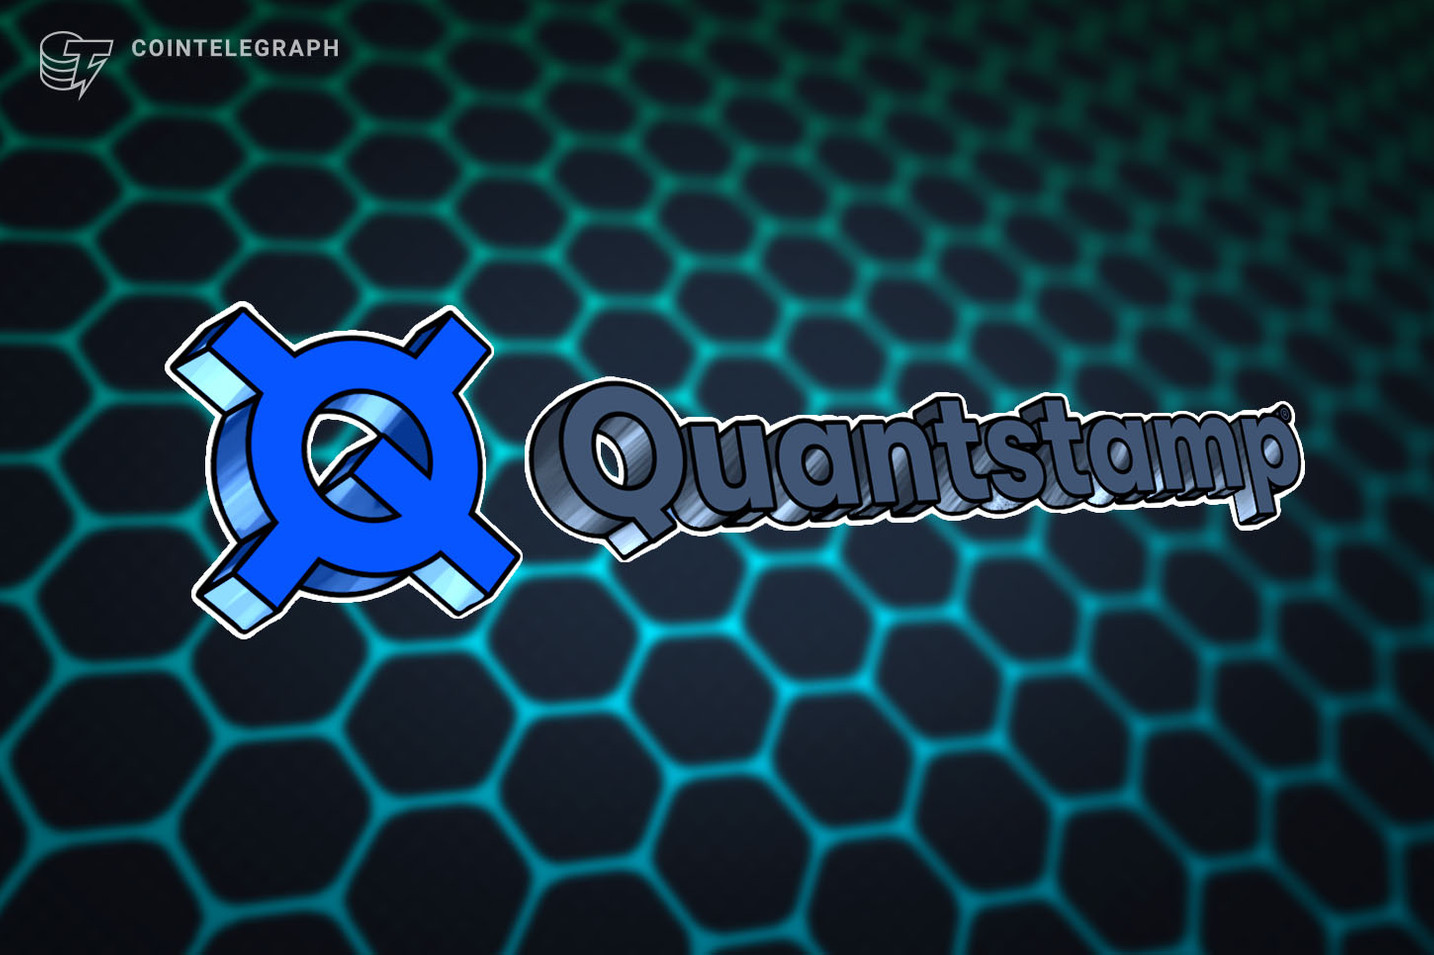 Quantstamp Releases Decentralized Security Network with Staking and Improved Transparency